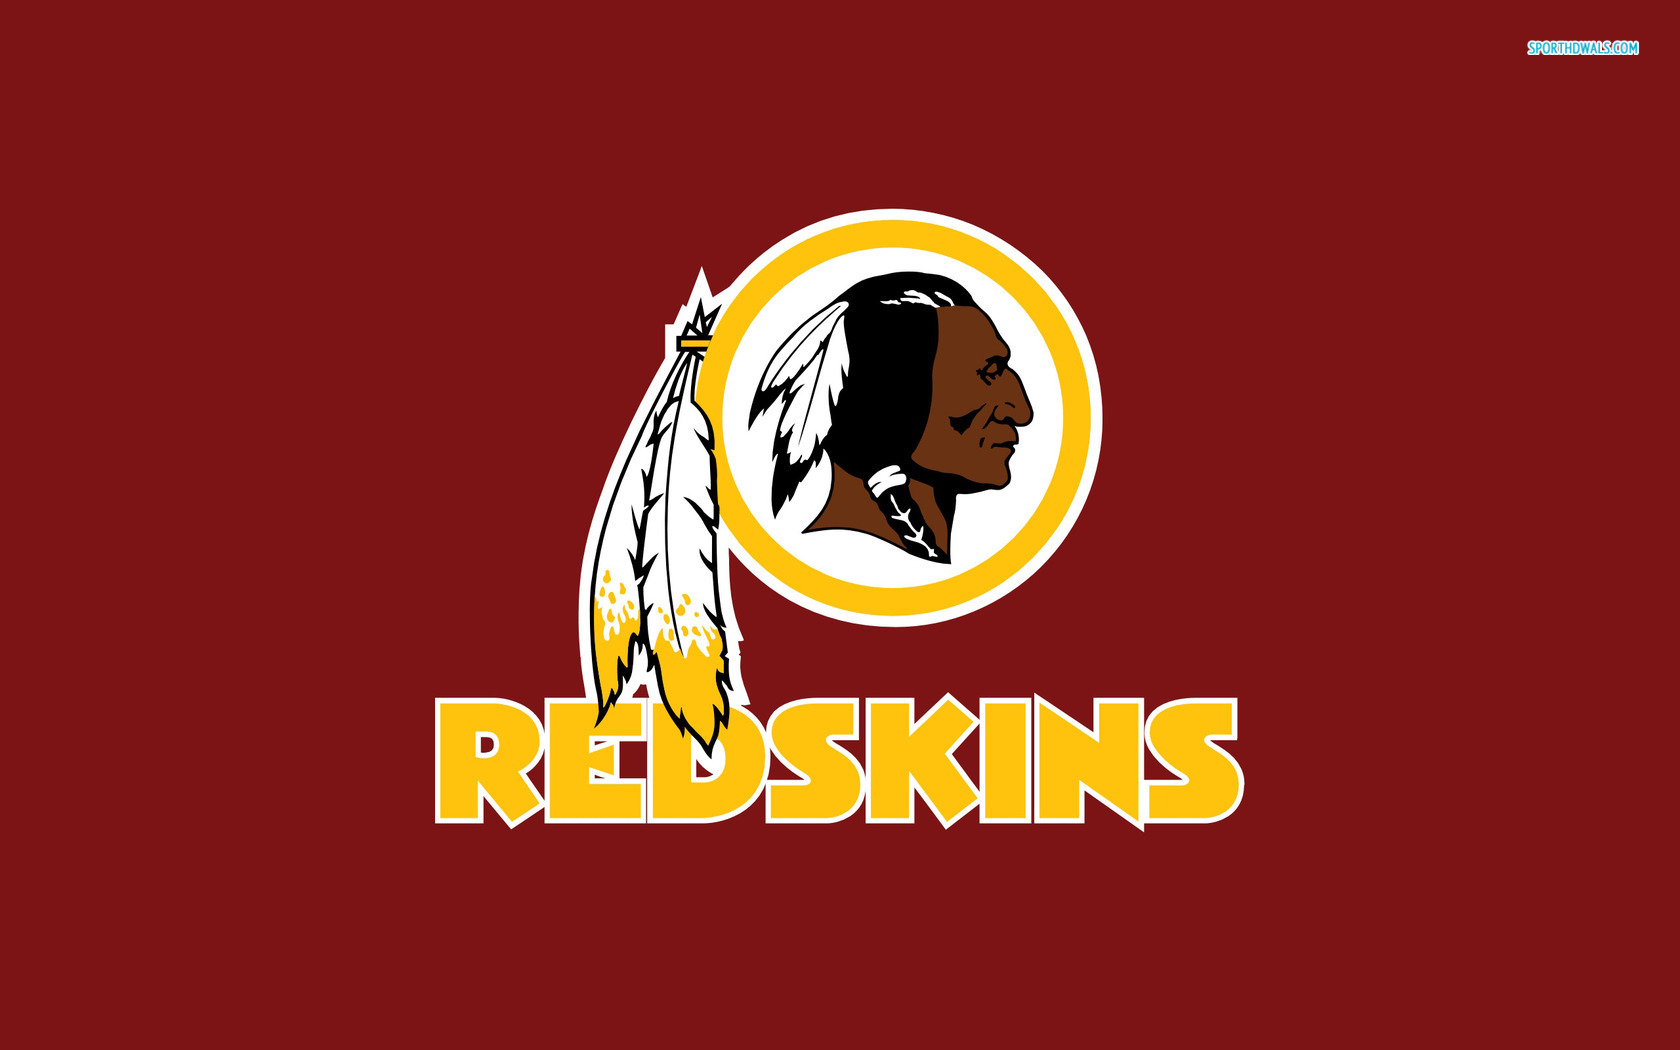 Washington Redskins HD background · More Washington Redskins wallpapers